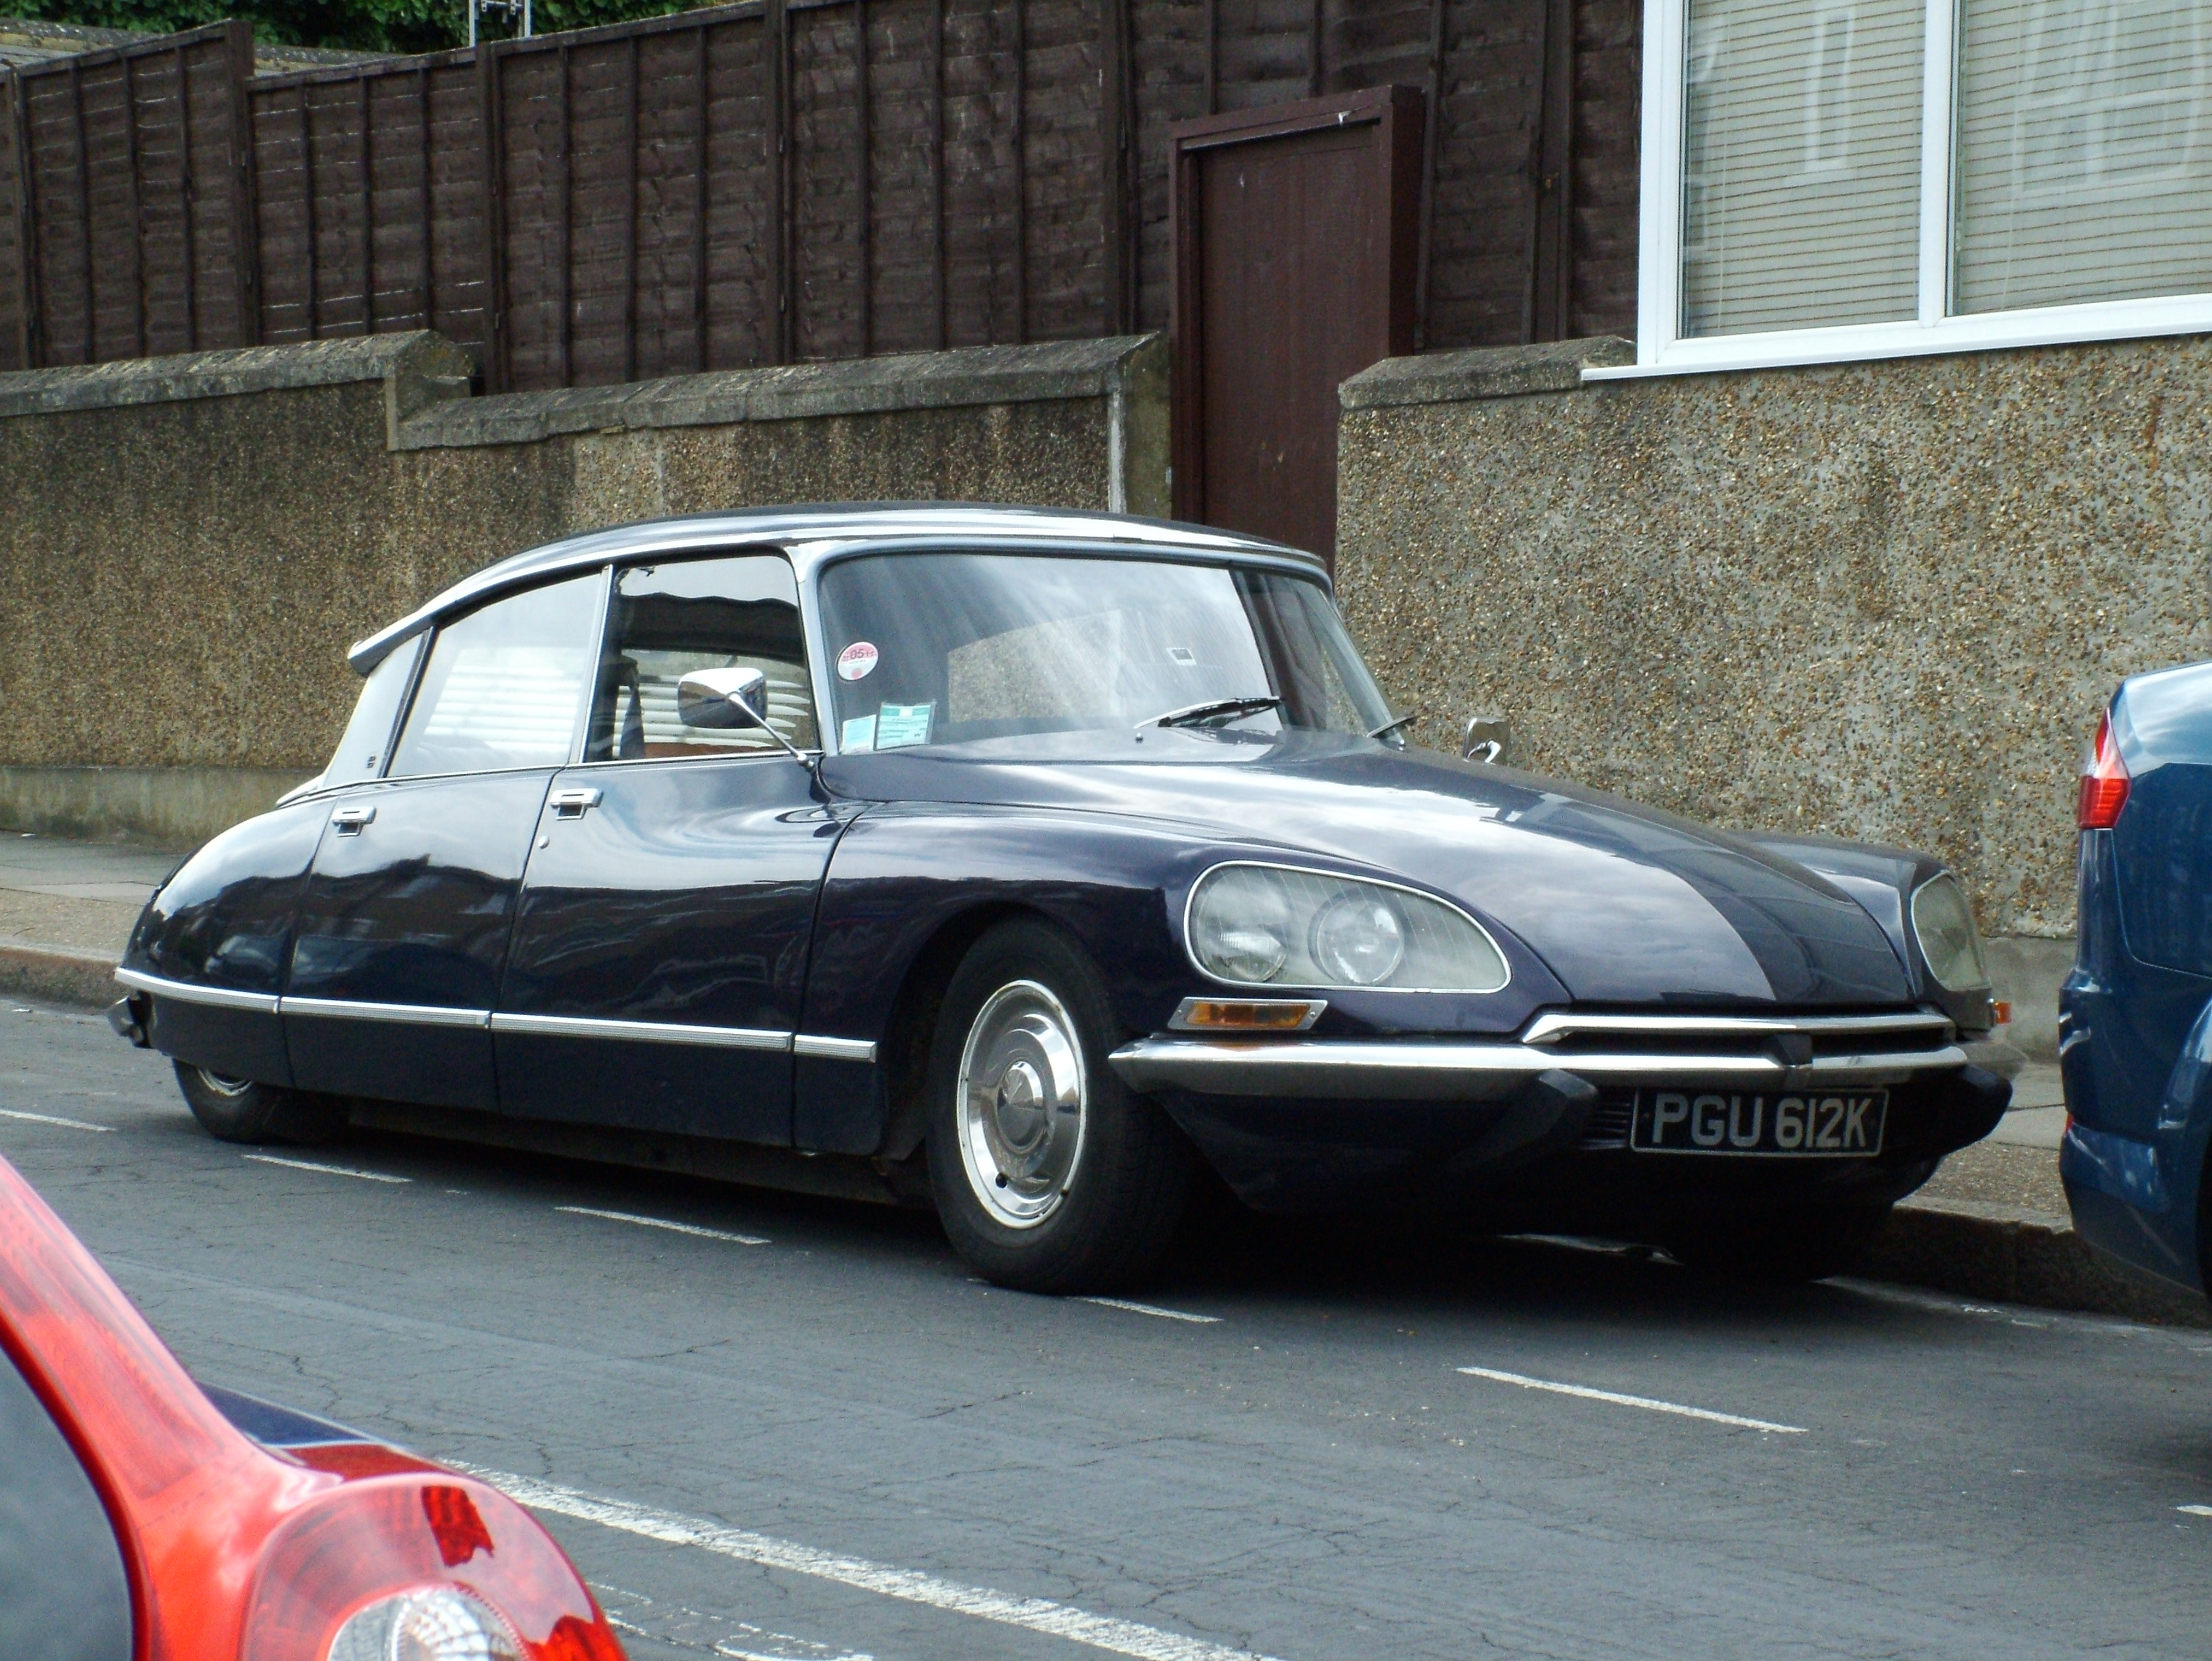 1972 citroen ds 21 image collections hd cars wallpaper 1972 citroen ds21 information and photos momentcar citroen ds21 1972 6 citroen ds21 1972 6 vanachro vanachro Images